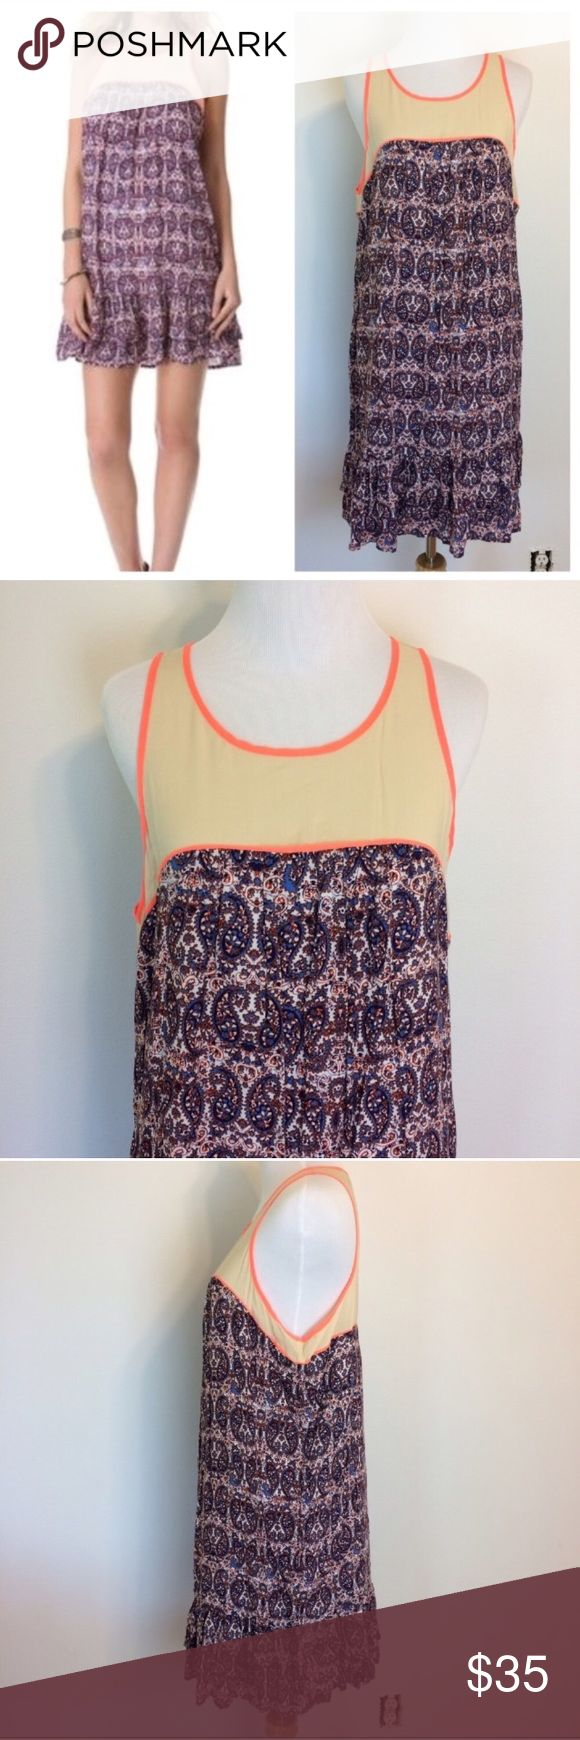 "Ella Moss Paisley Neon Orange Trim Dress Beautiful Ella Moss dress with paisley print, Sheer Neckline with neon orange trim. Size Large. One tiny underarm stain. Pictured. Underarm measurement is 21 1/4"". Length is 37"". Ella Moss Dresses"